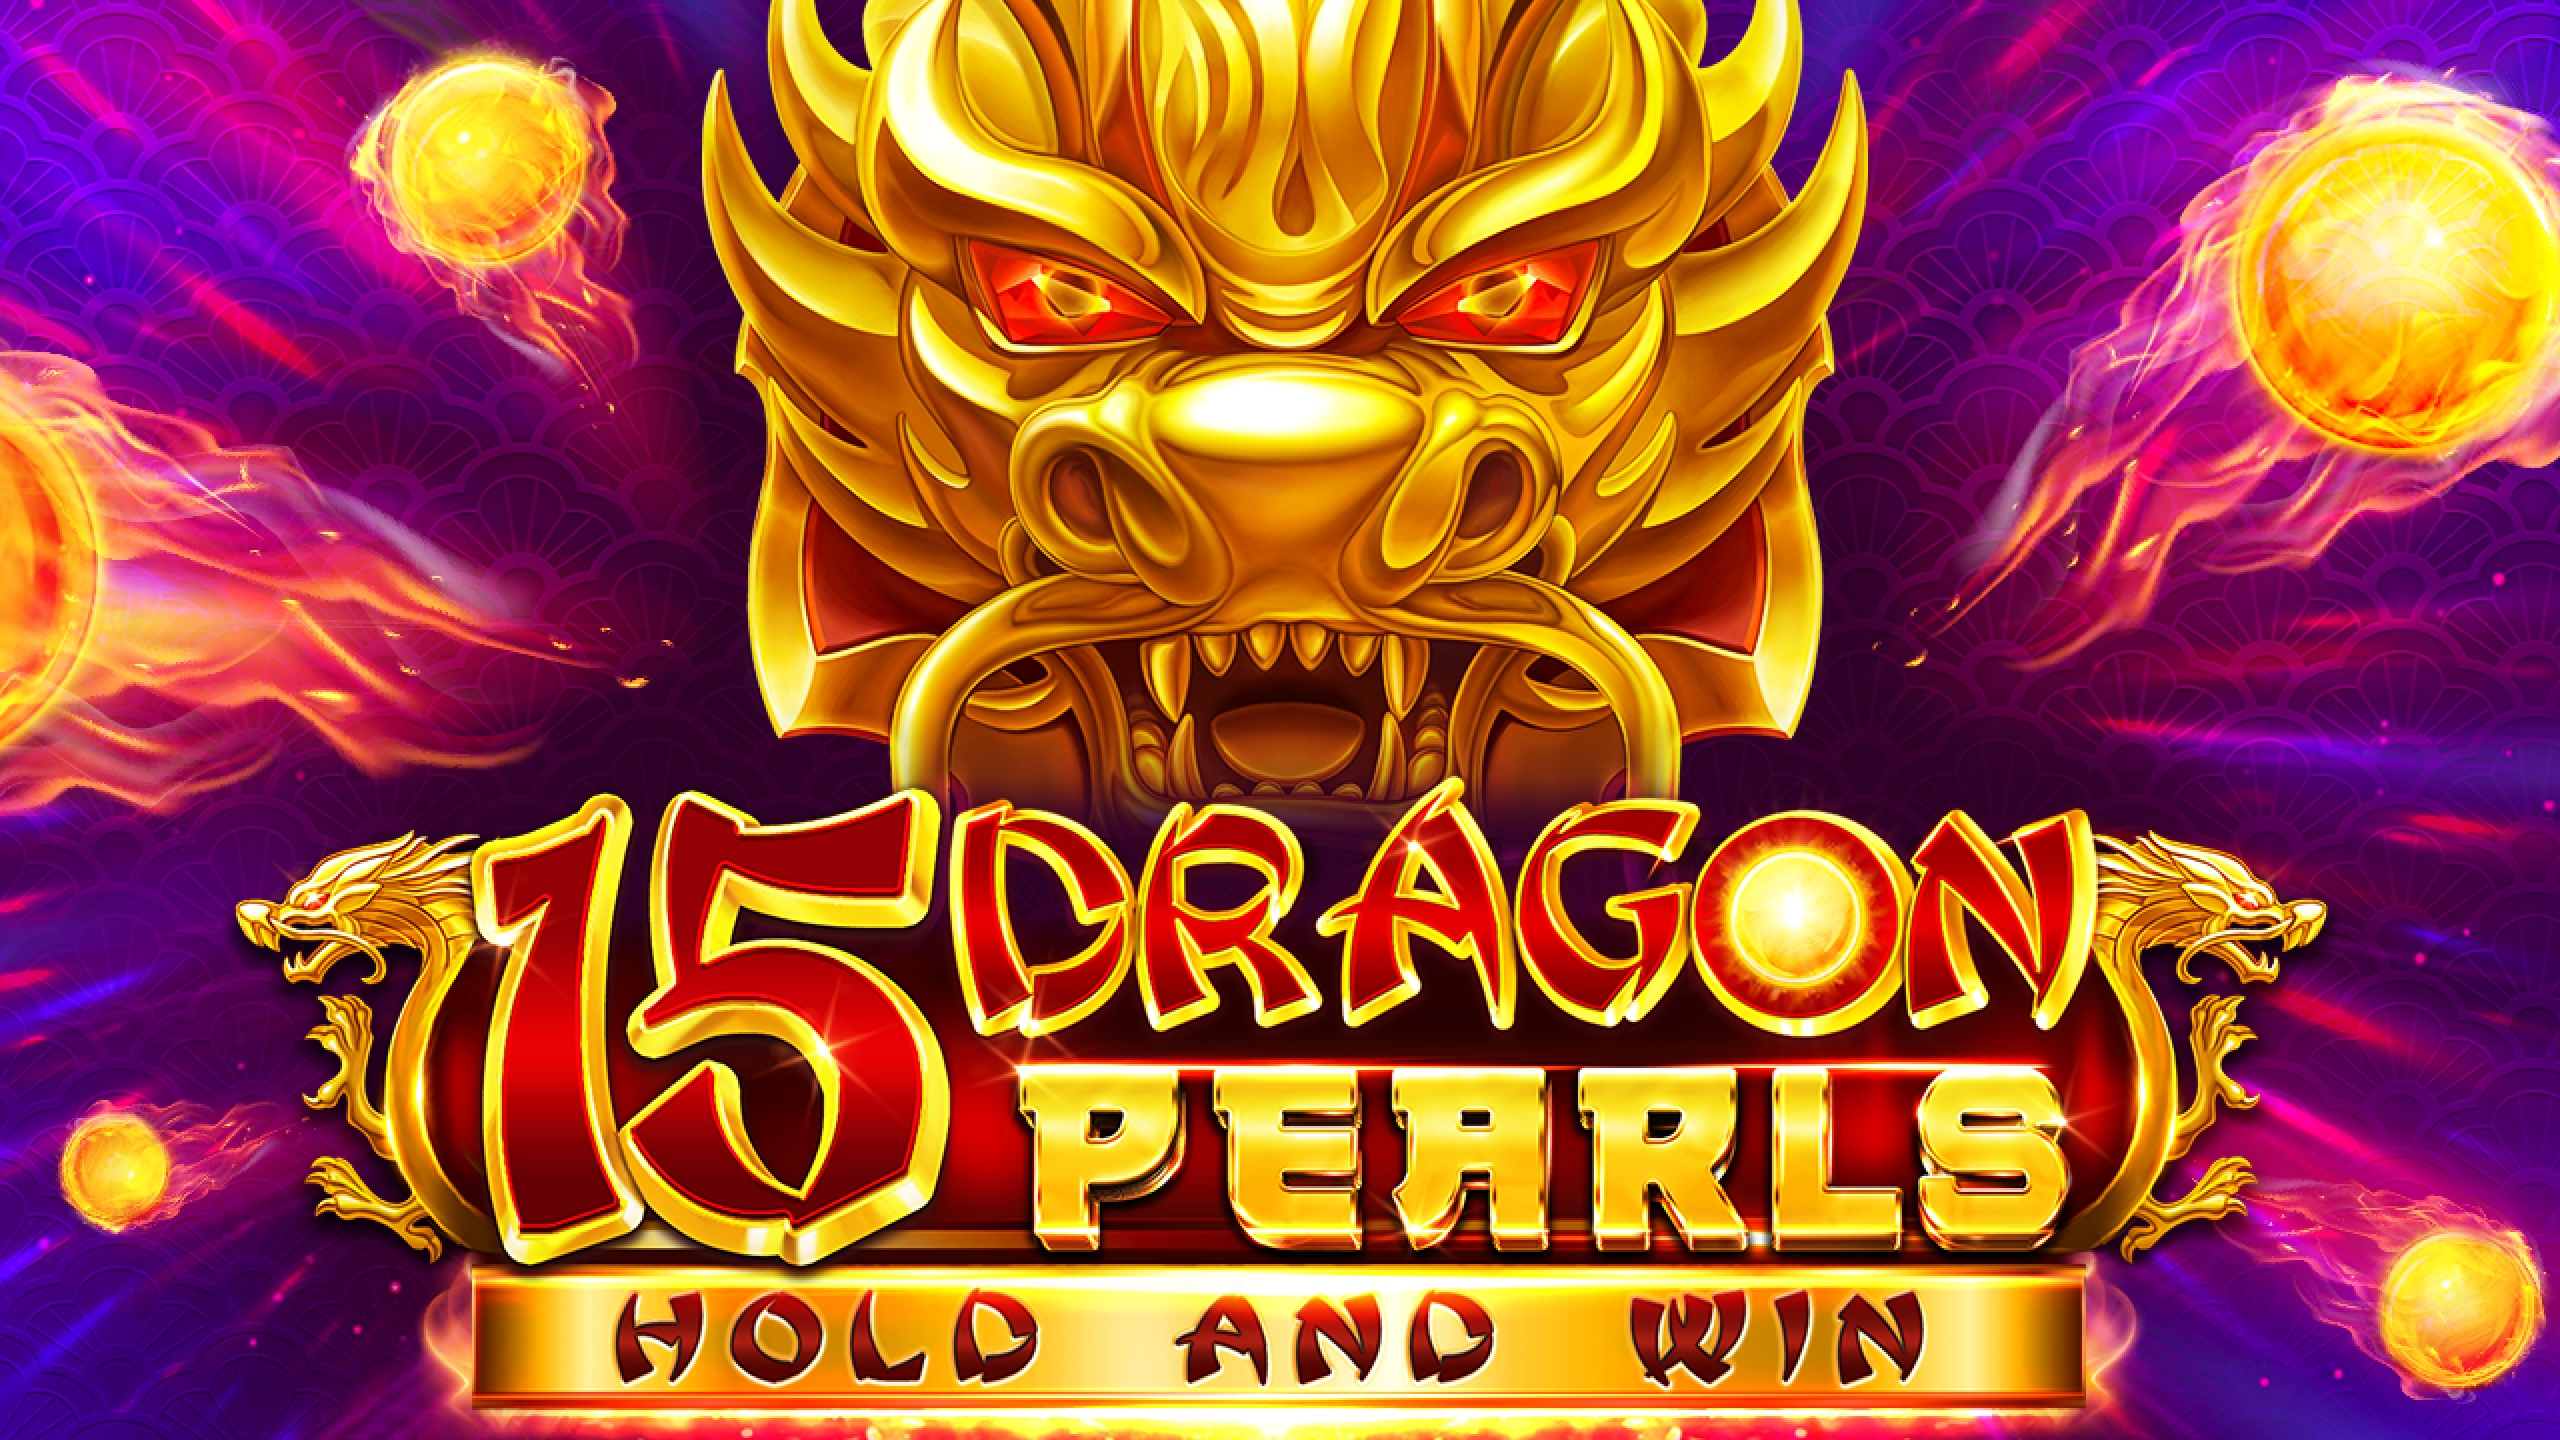 The Pearl of the Dragon Online Slot Demo Game by Spin Games